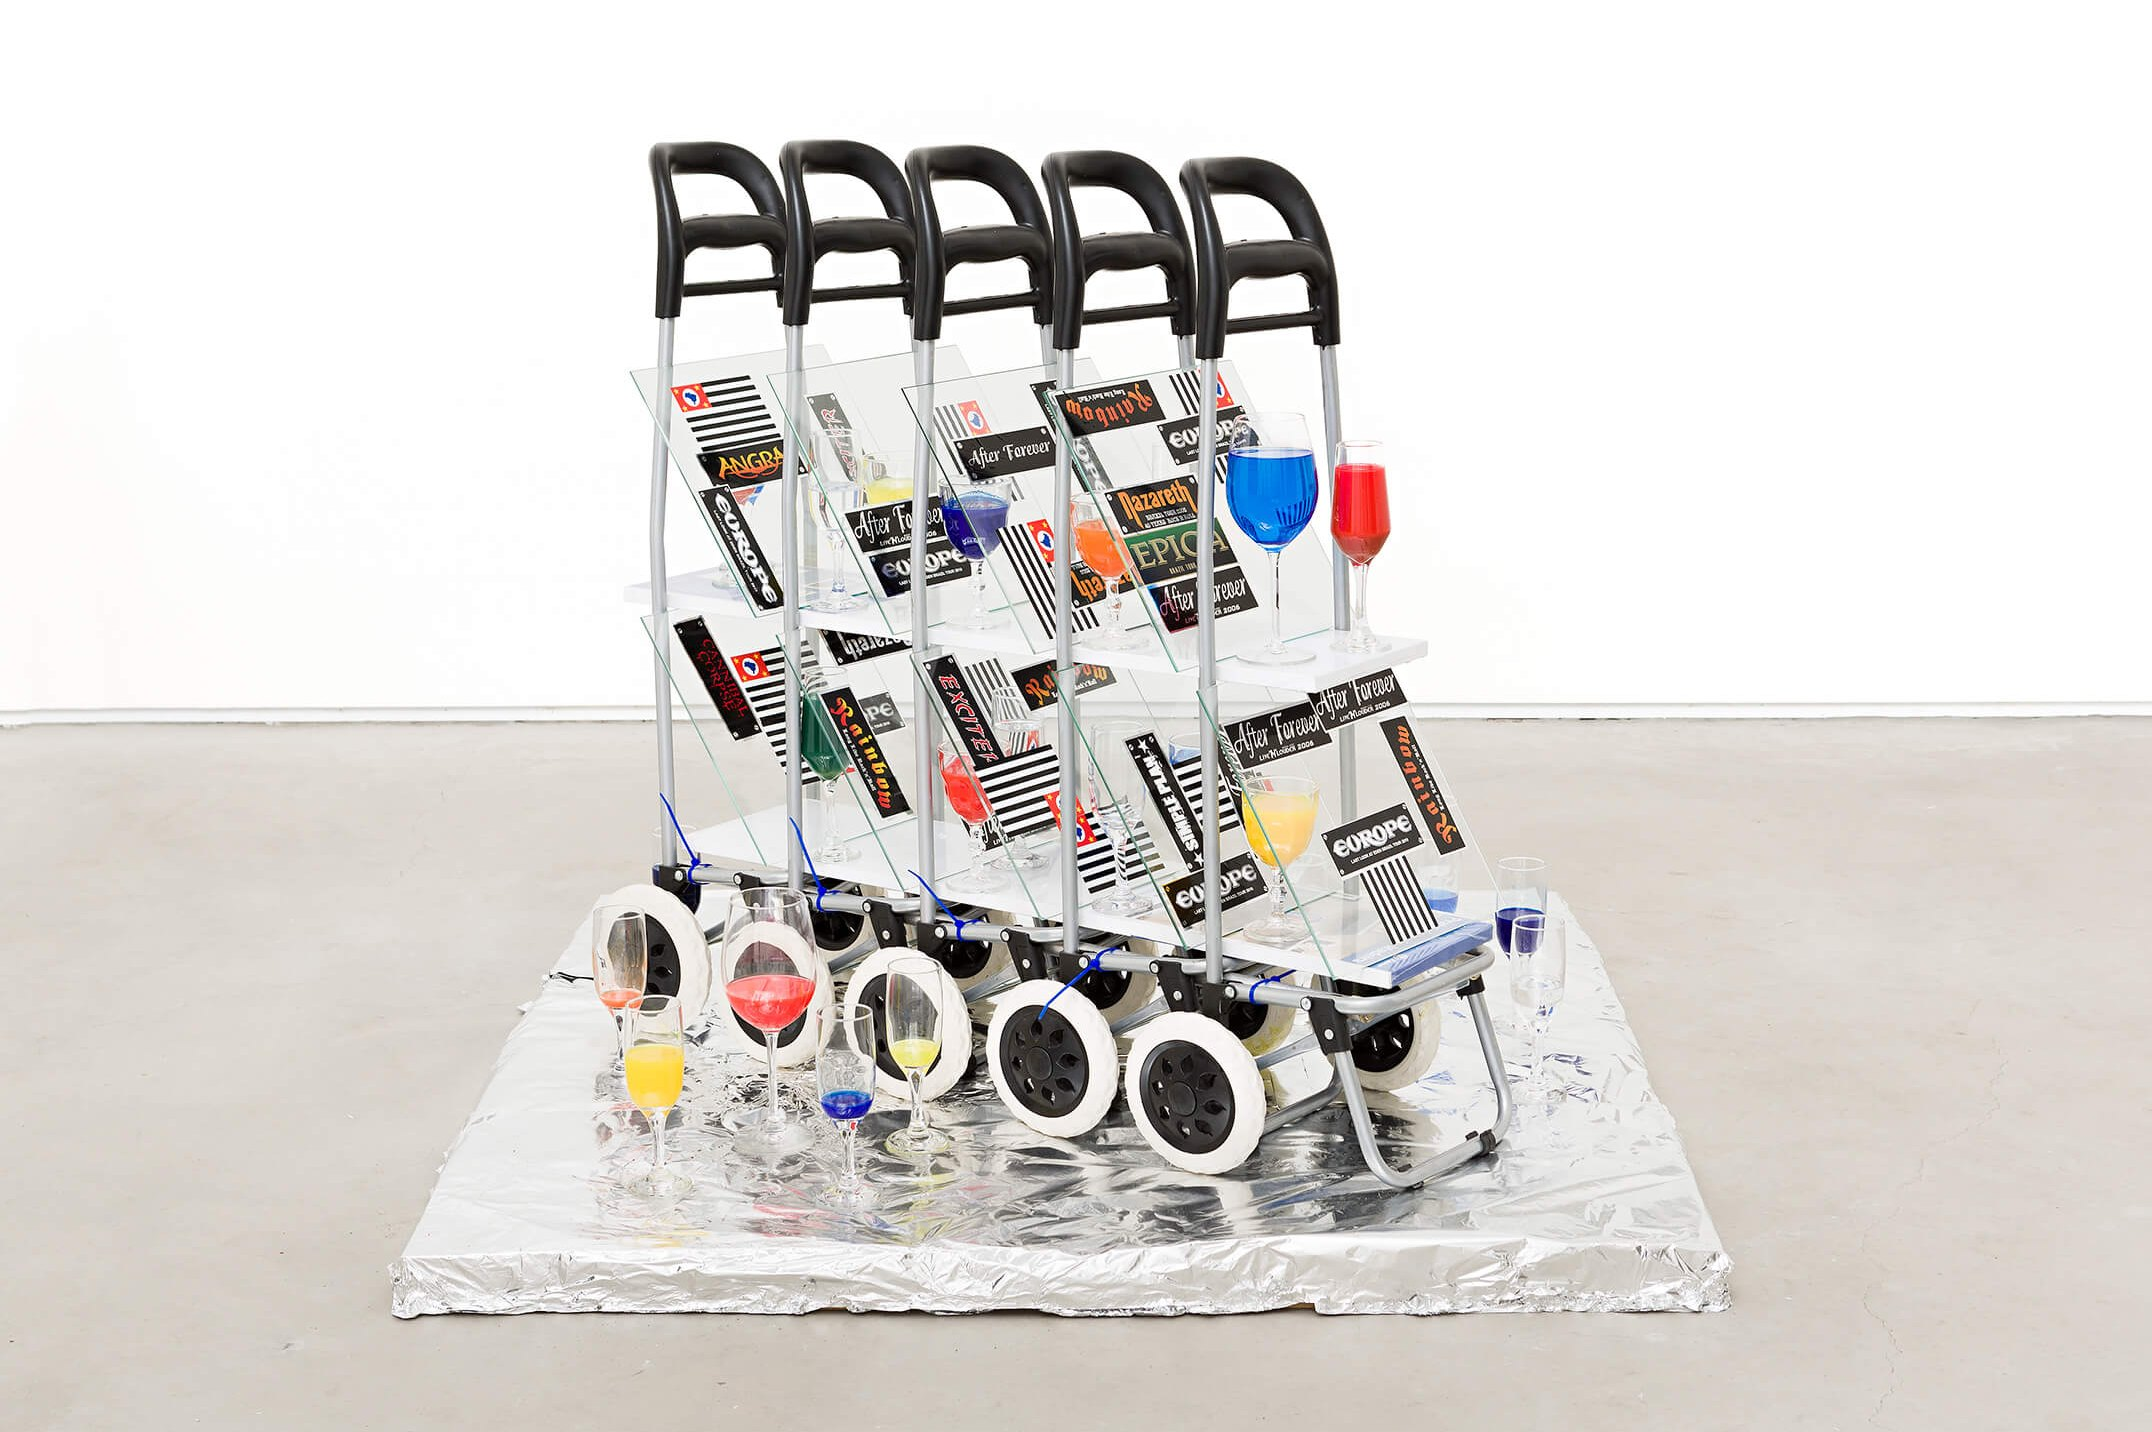 Adriano Costa,<em>Cart of Drinks</em>, 2015,shelves, shopping carts, aluminum foil, glass cups with pigments, wooden base,97 × 103 × 35 cm - Mendes Wood DM